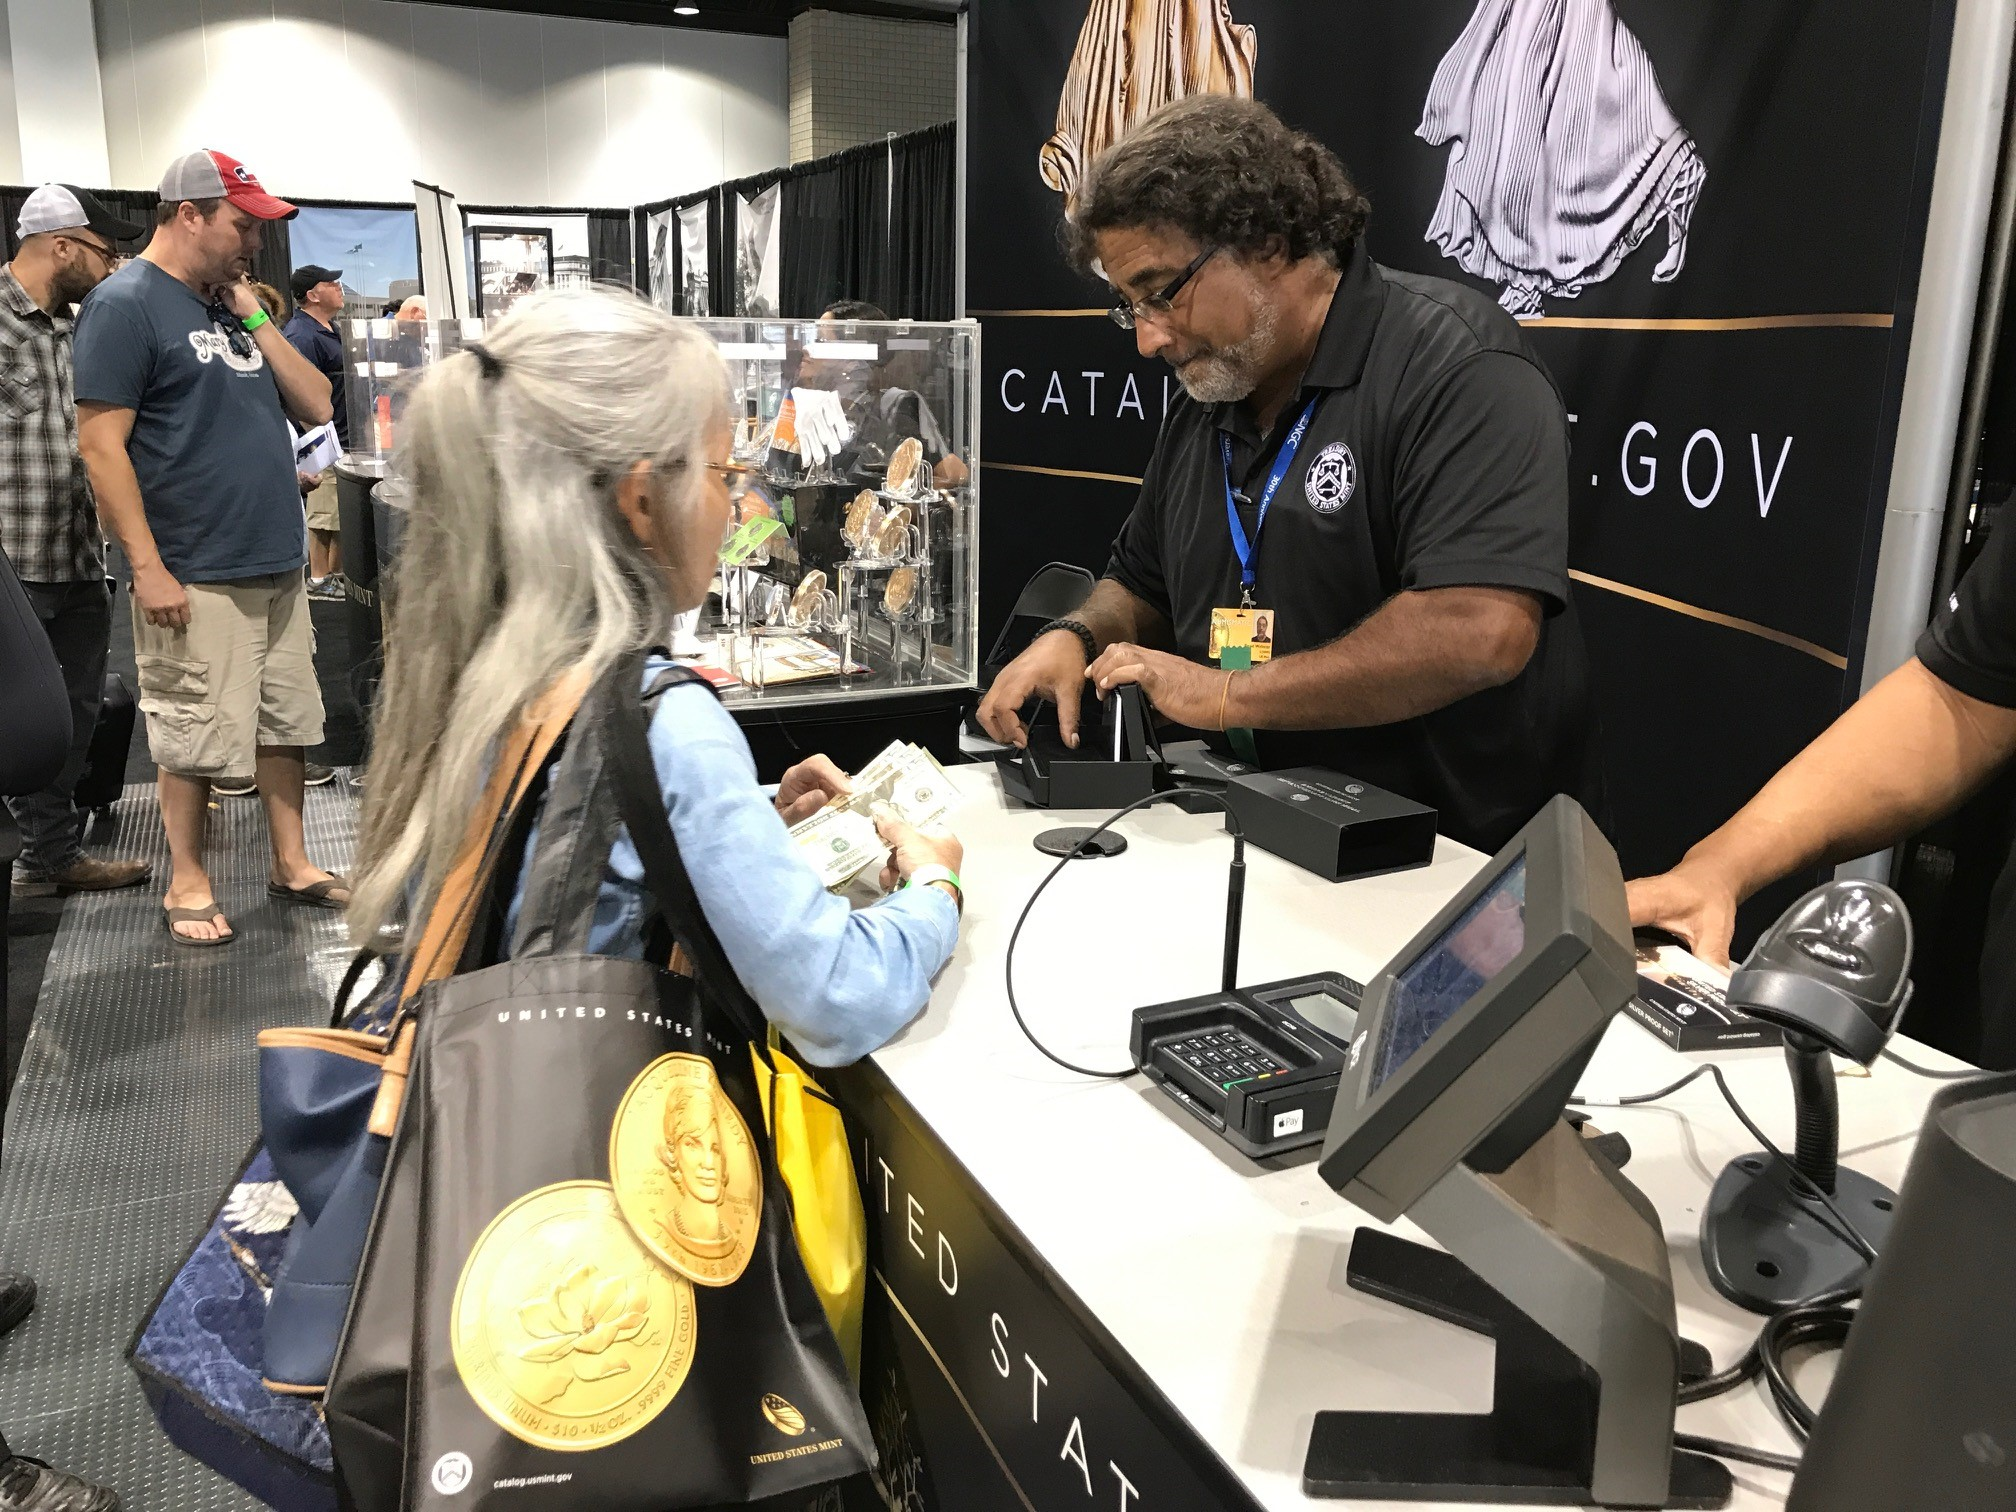 A customer makes a purchase from the U.S. Mint at booth #478. U.S. Mint photo by Debbie Dawson.